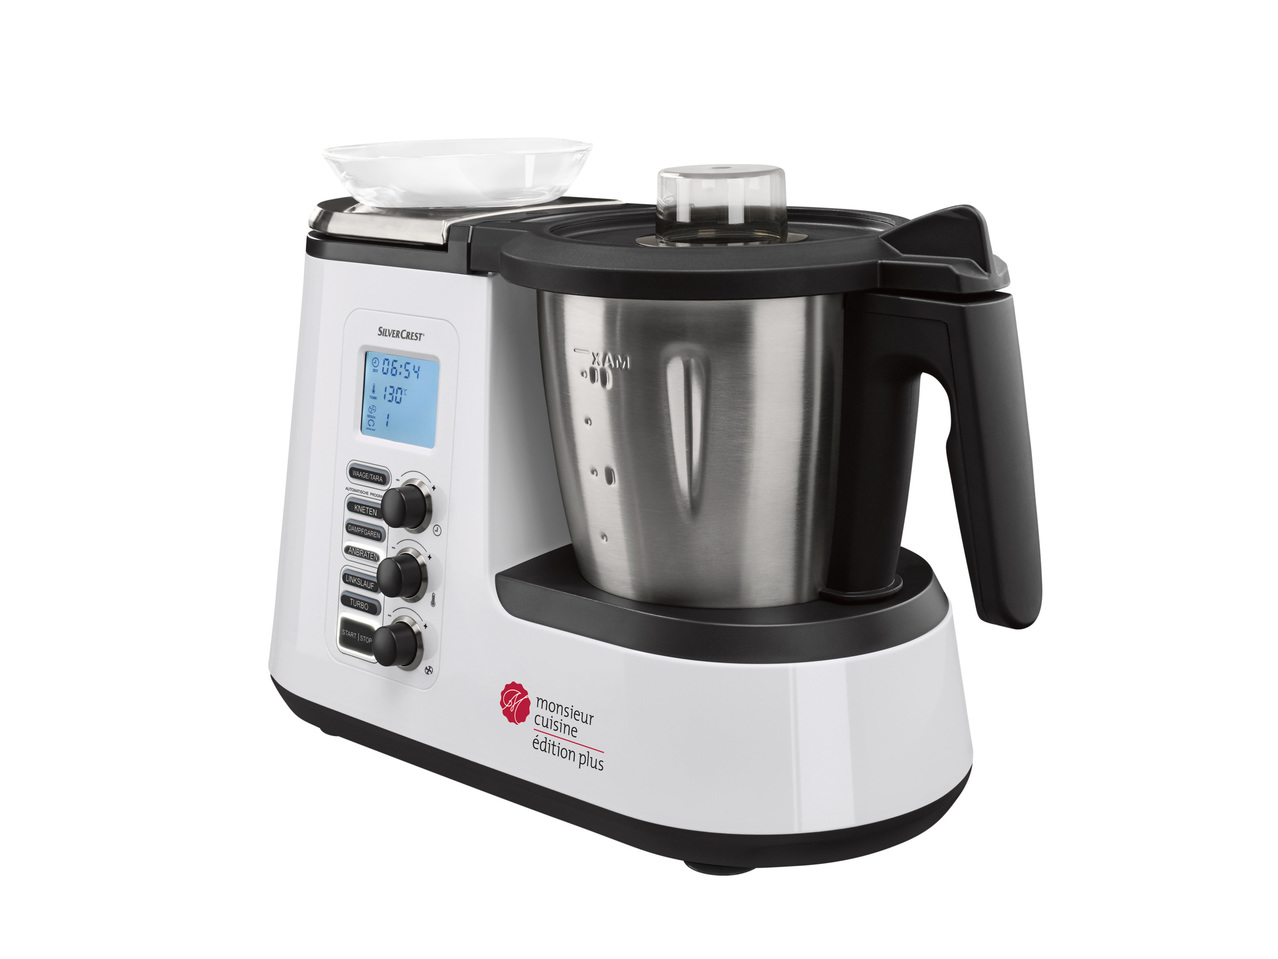 Silvercrest Kitchen Tools Monsieur Cuisine Thermo Food Processor